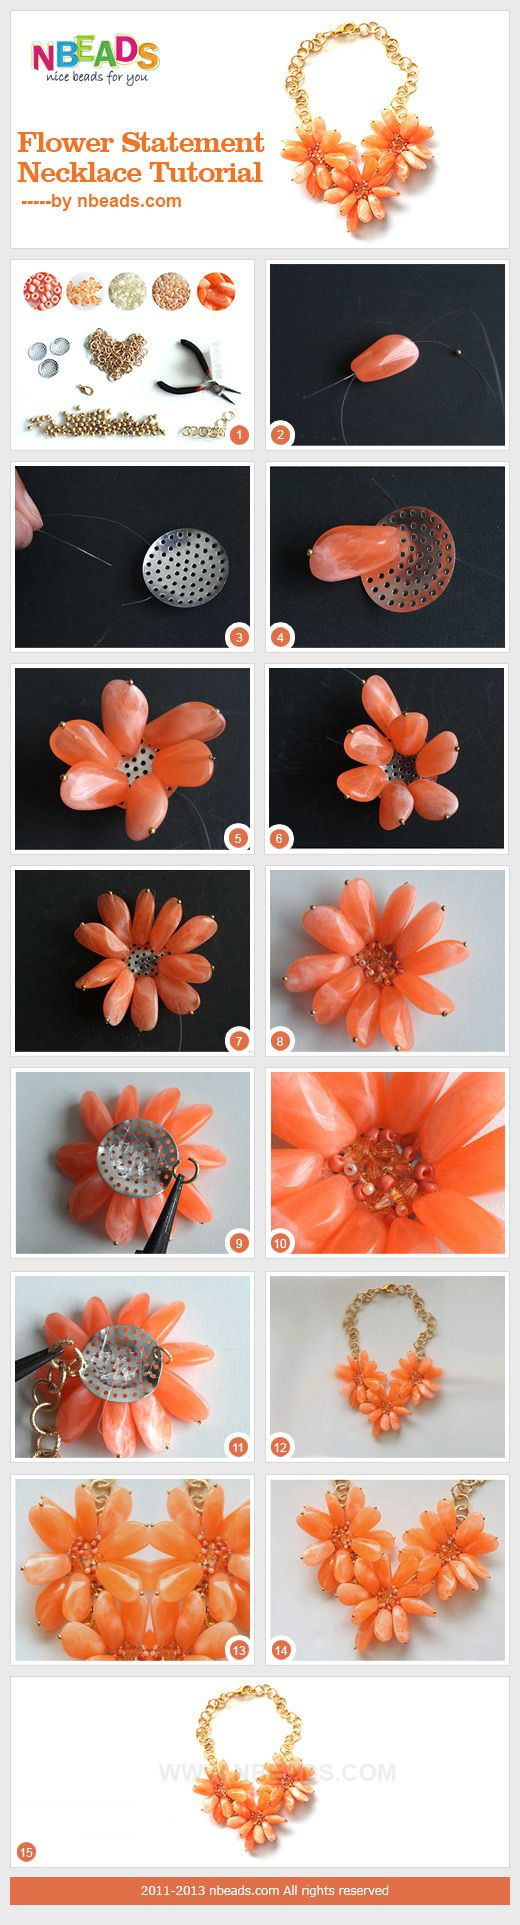 Flower statement necklace tutorial - I wonder where one can get some of those perforated discs? You could make more than flowers with those things!